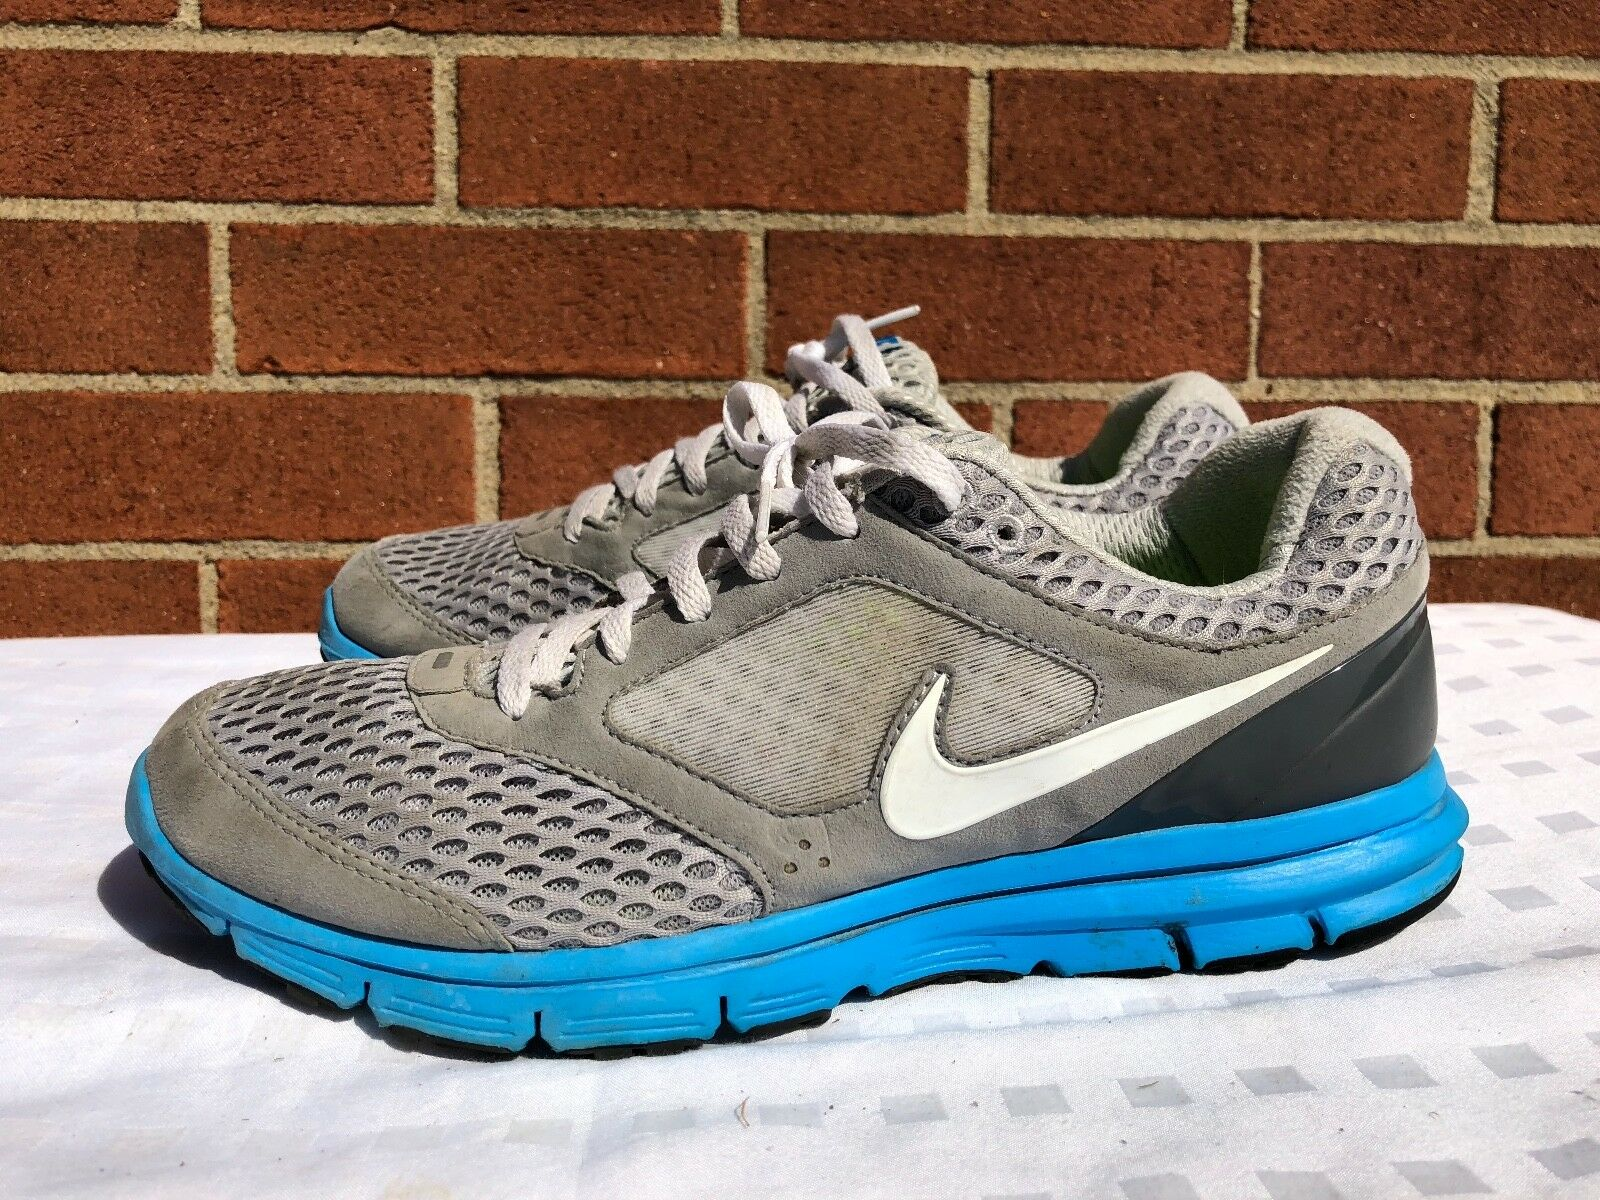 NIKE LUNARFLY+2 BlLUE/GRAY ATHLETIC SHOES WOMEN'S Price reduction Cheap and beautiful fashion